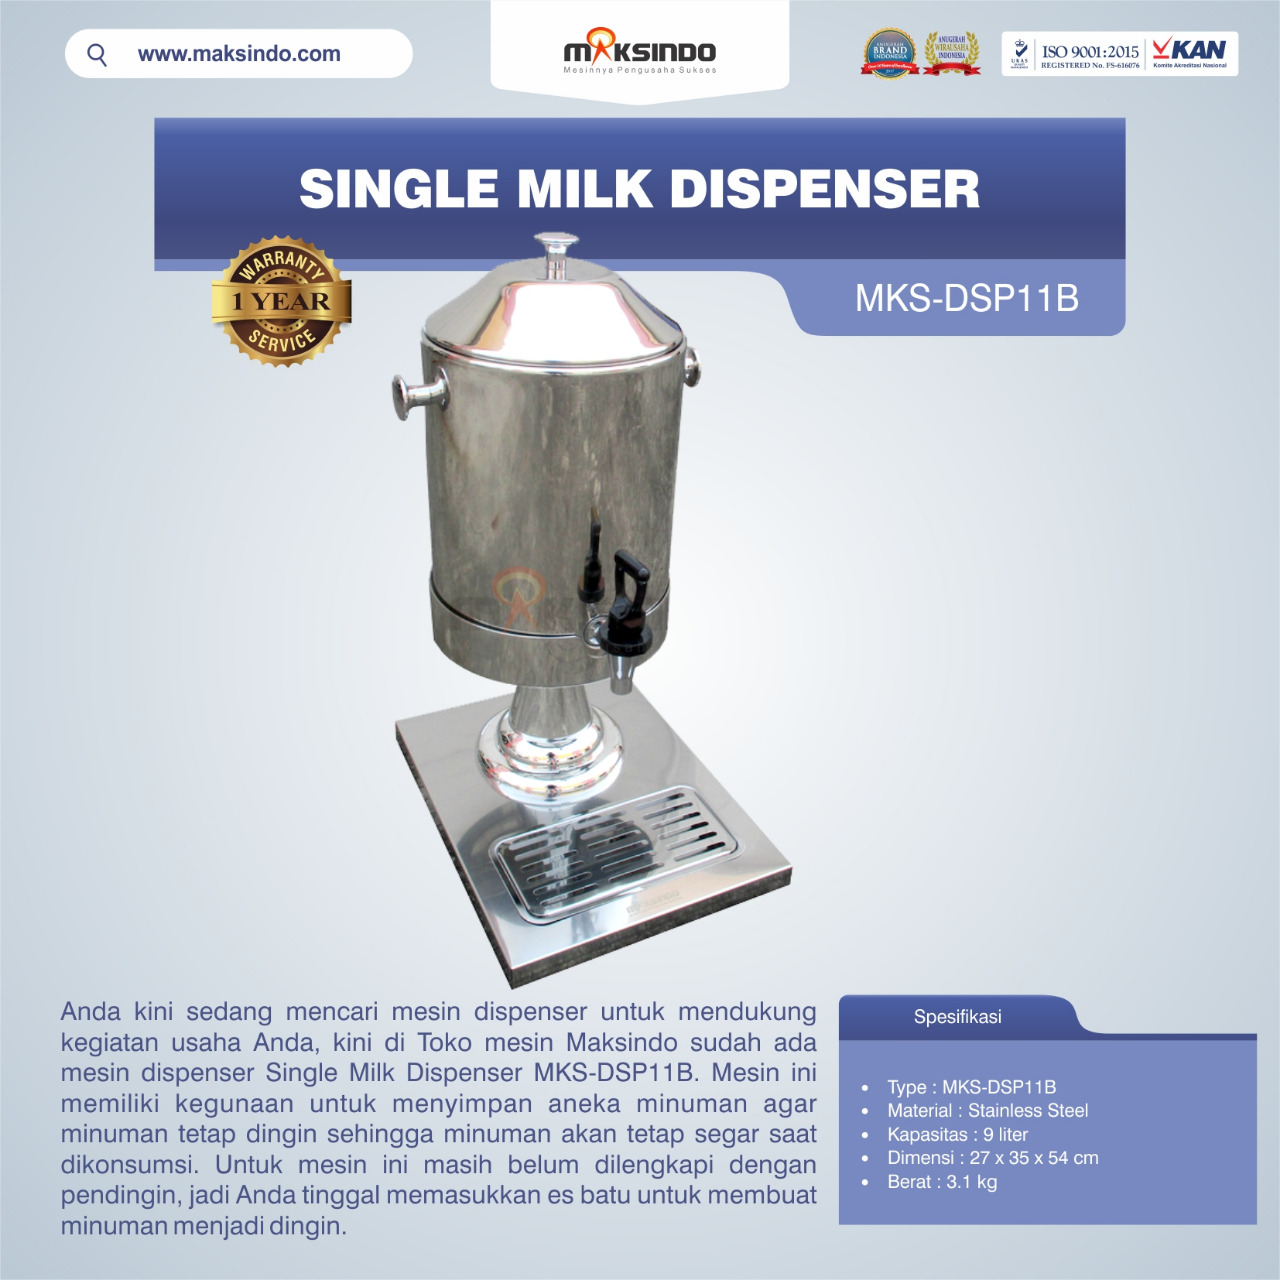 Jual Single Milk Dispenser MKS-DSP11B di Pekanbaru